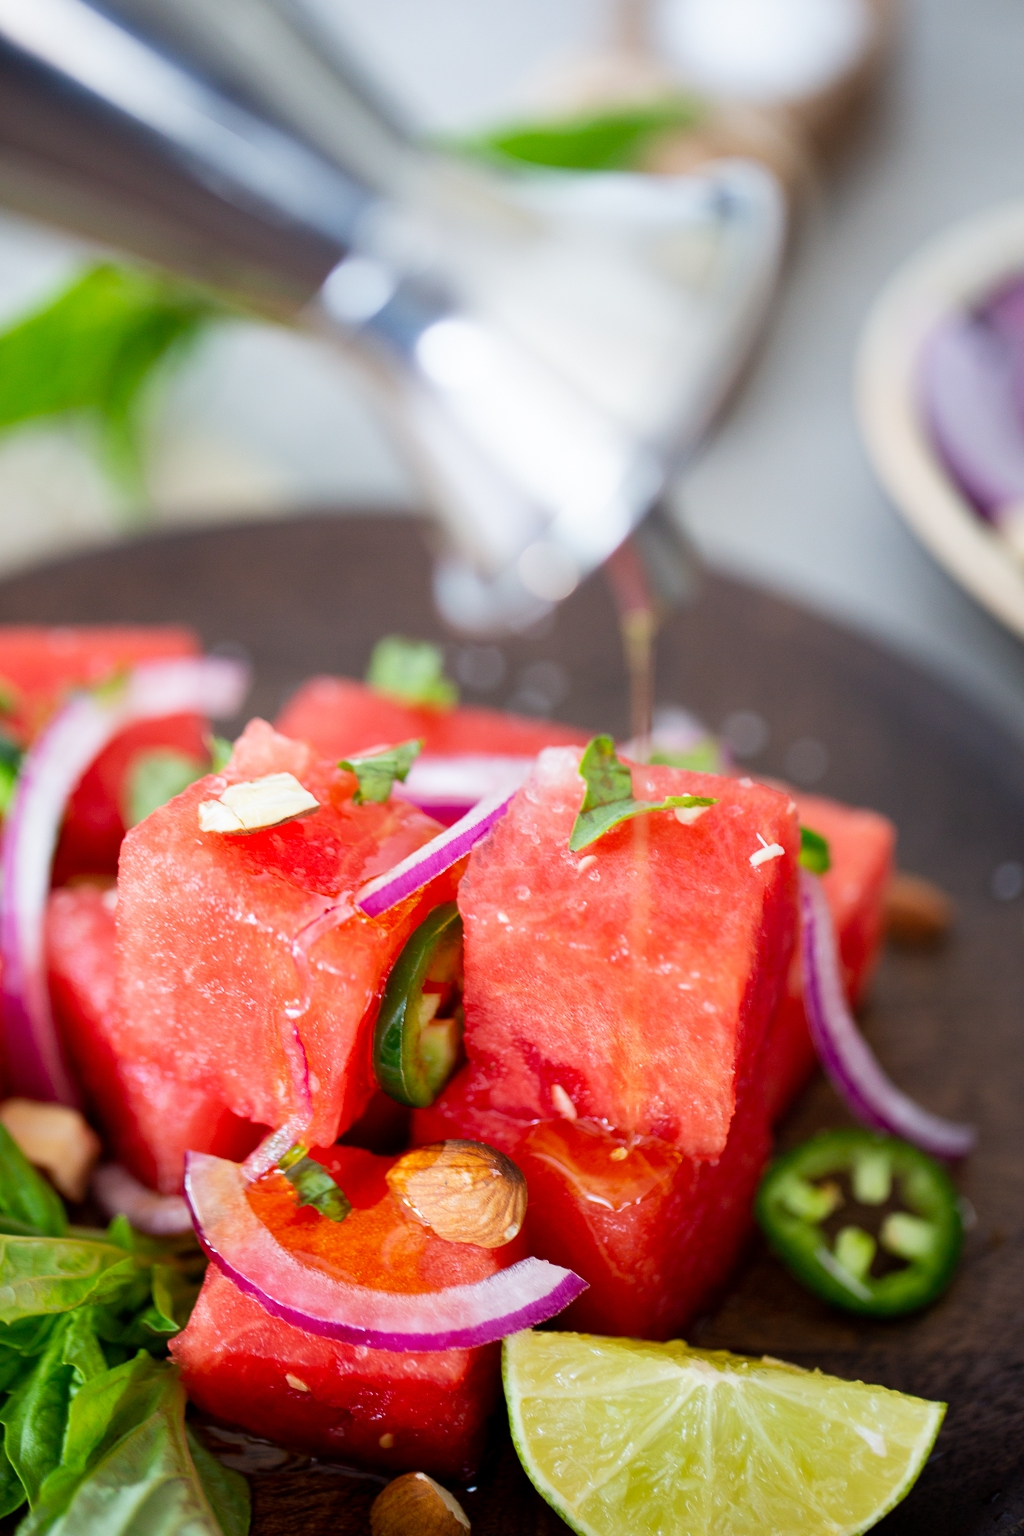 Spicy Watermelon saladbeing drizzled with olive oil .